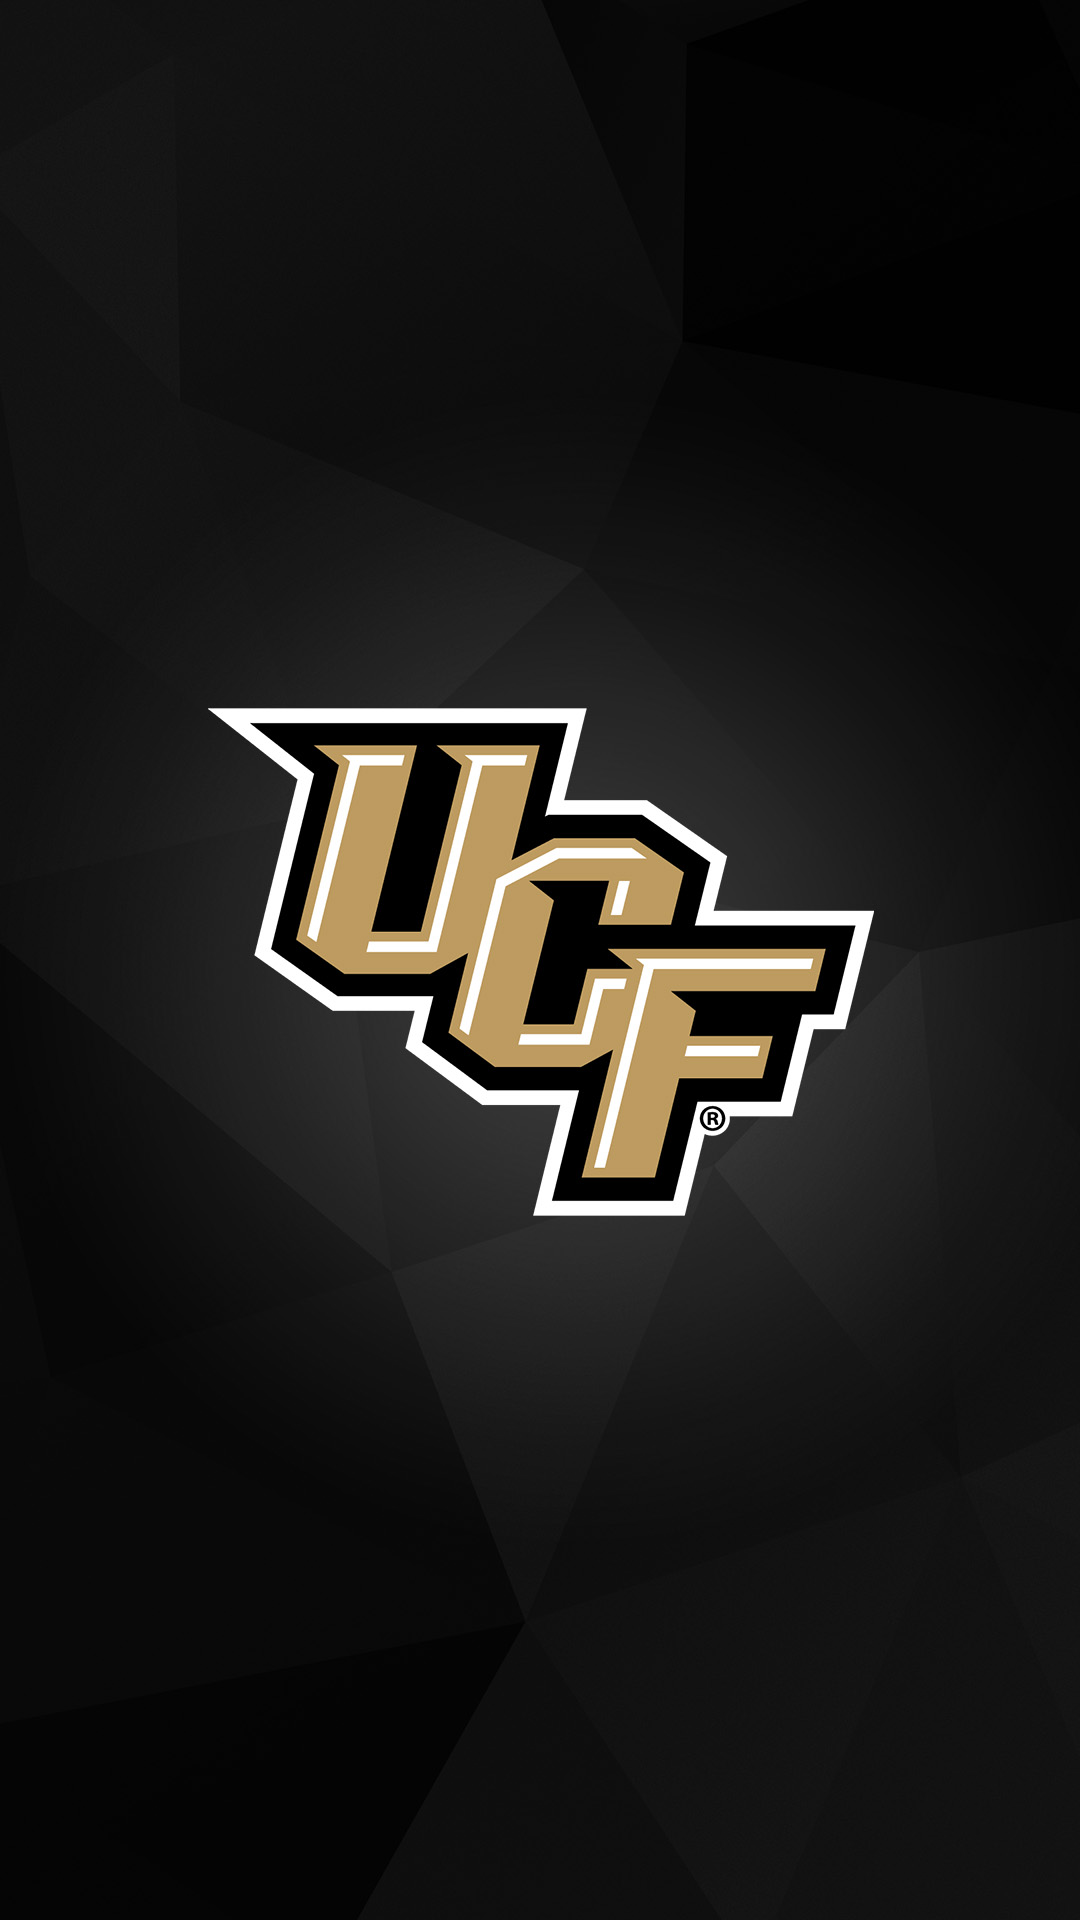 3d Live Wallpaper For Iphone 4s Download Ucf Wallpaper Gallery